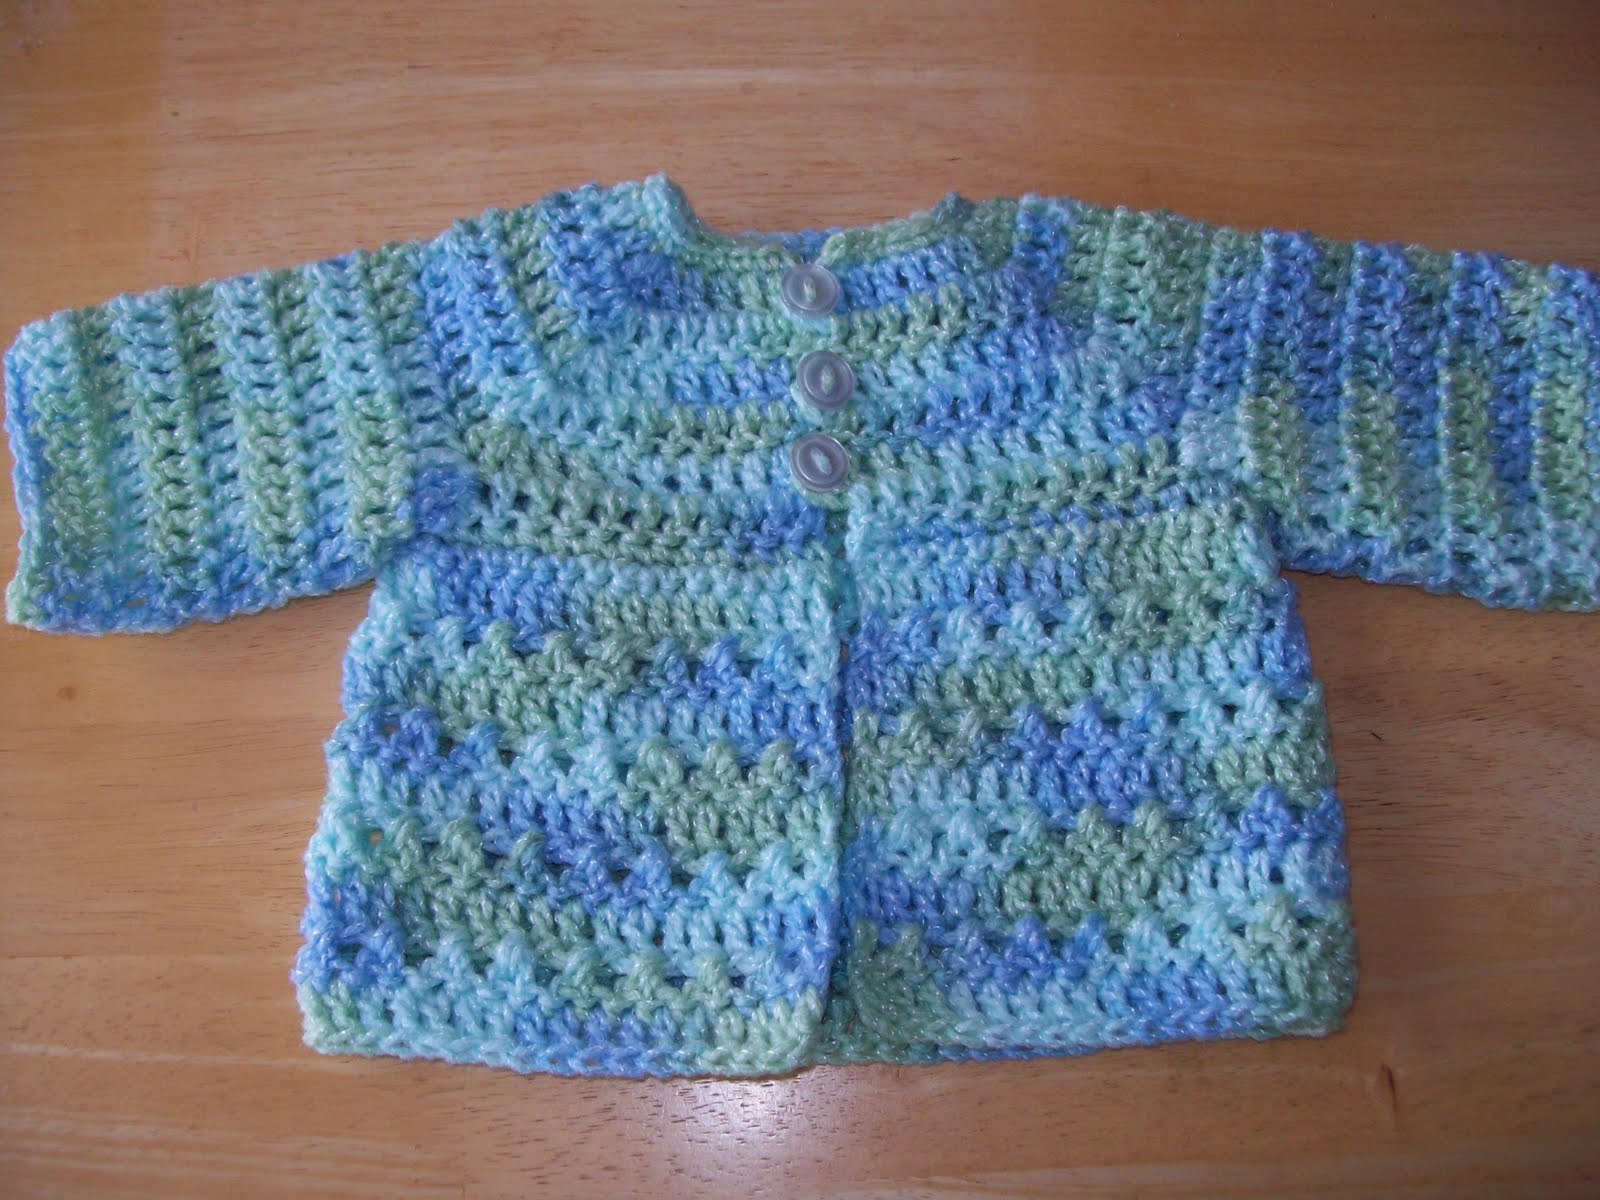 Easy Crochet Baby Sweater Pattern Free : Easy Baby Crochet Sweaters - Long Sweater Jacket